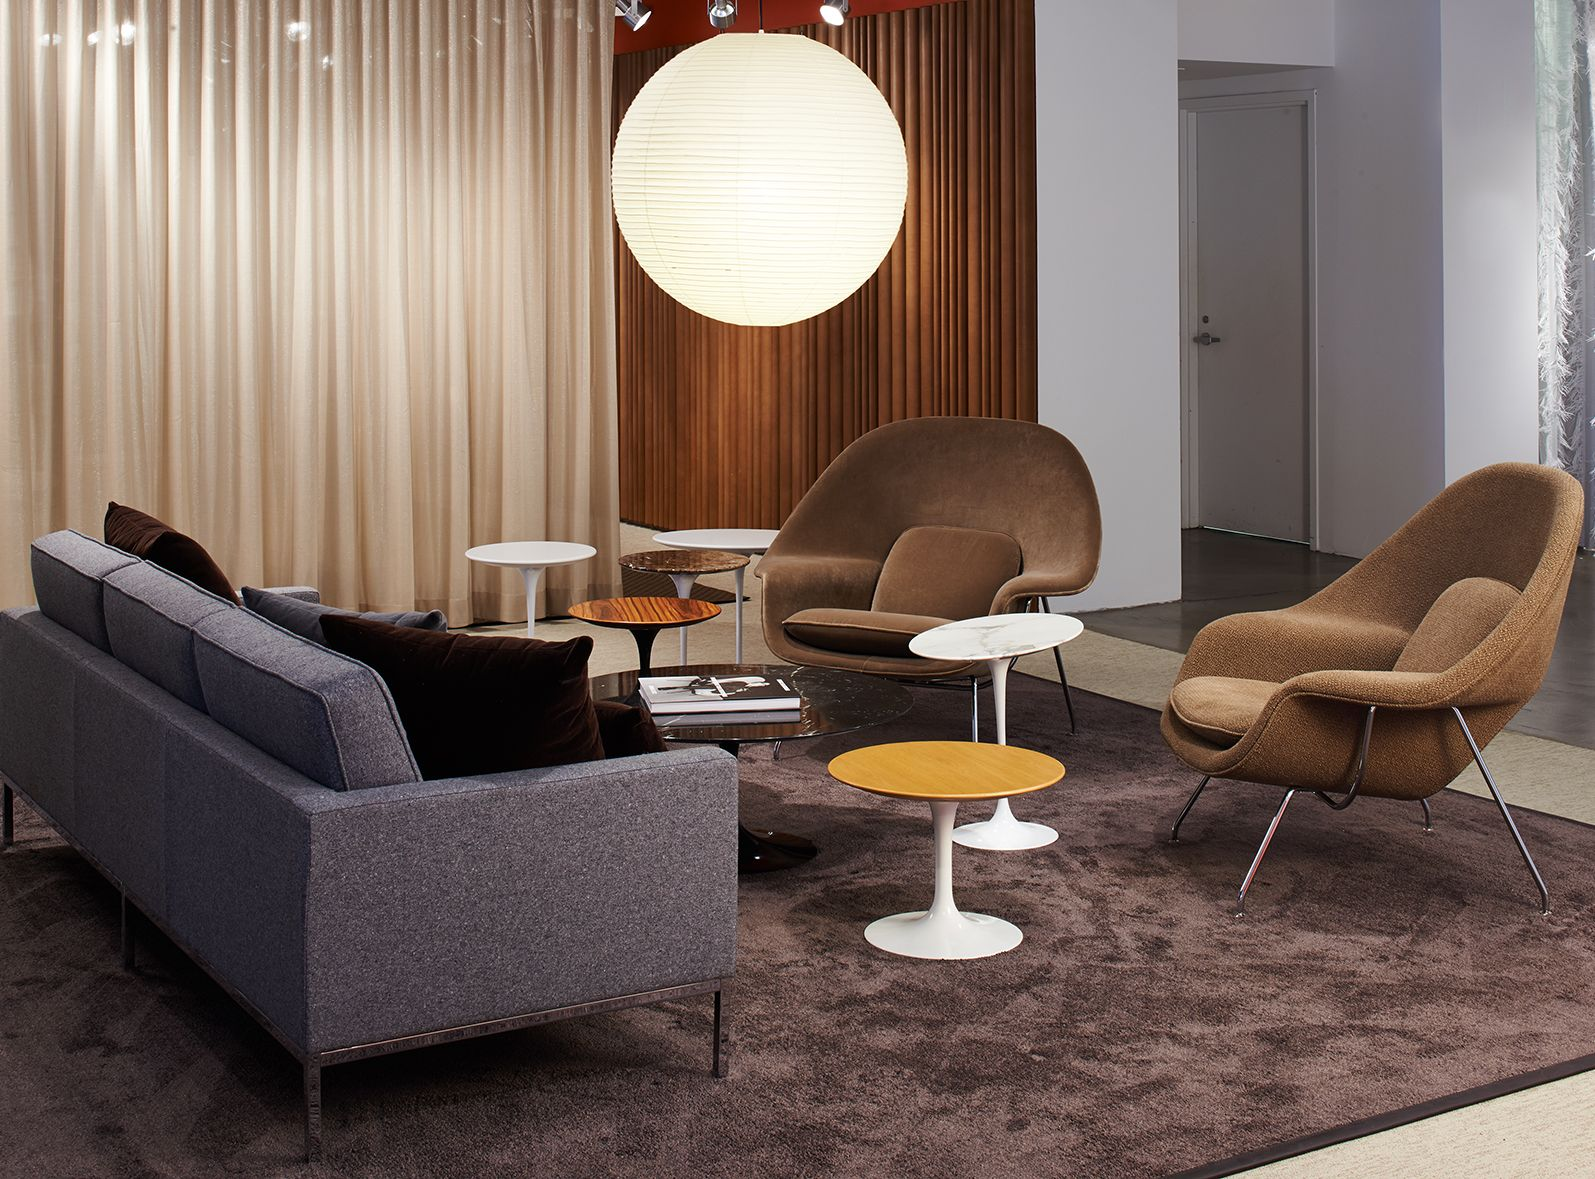 Womb chair living room - Saarinen Side Tables And Womb Chairs Tags Keywords Neocon 2014 Showroom Chicago Saarinen Side